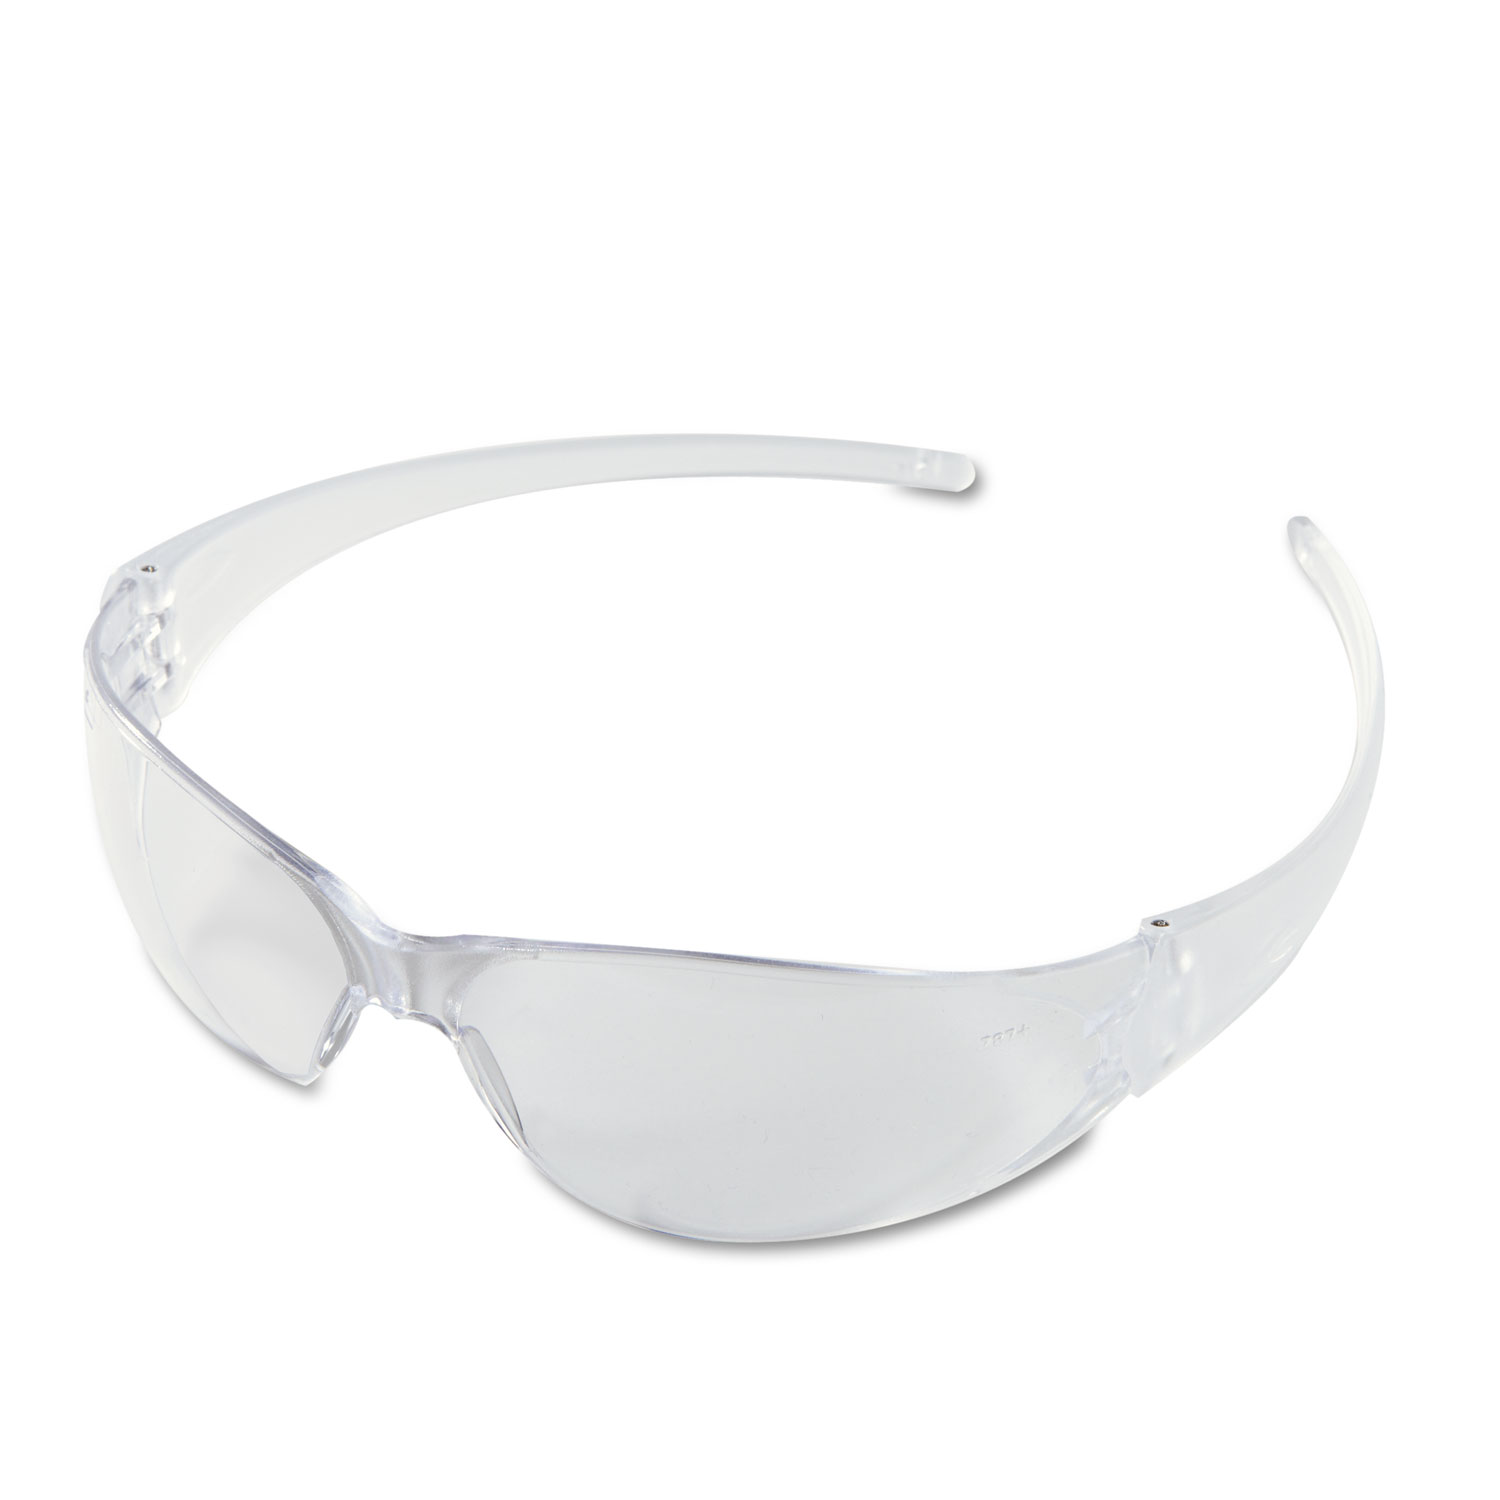 Checkmate Wraparound Safety Glasses, CLR Polycarbonate Frame, Coated Clear Lens